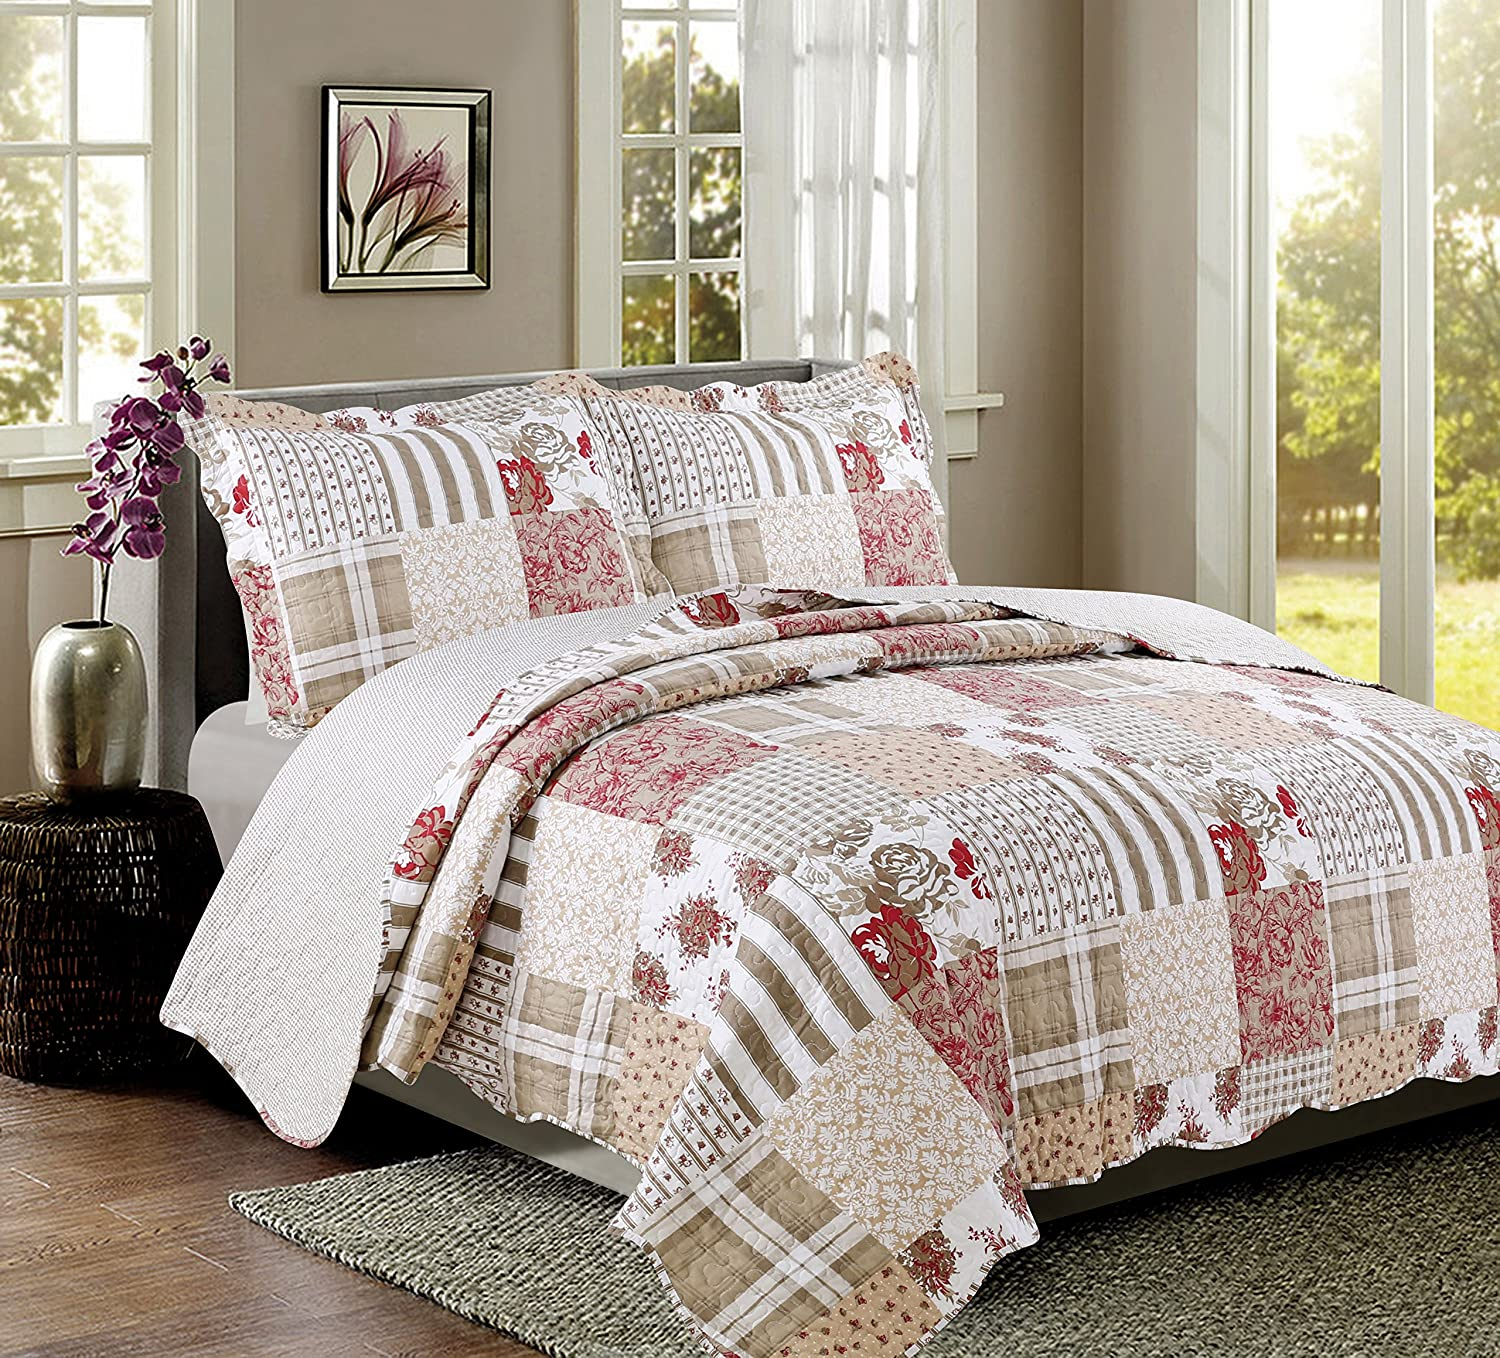 Coast to Coast Living 3-Pc Quilt Sets Luxurious Soft Hypoallergenic (Americana, King)